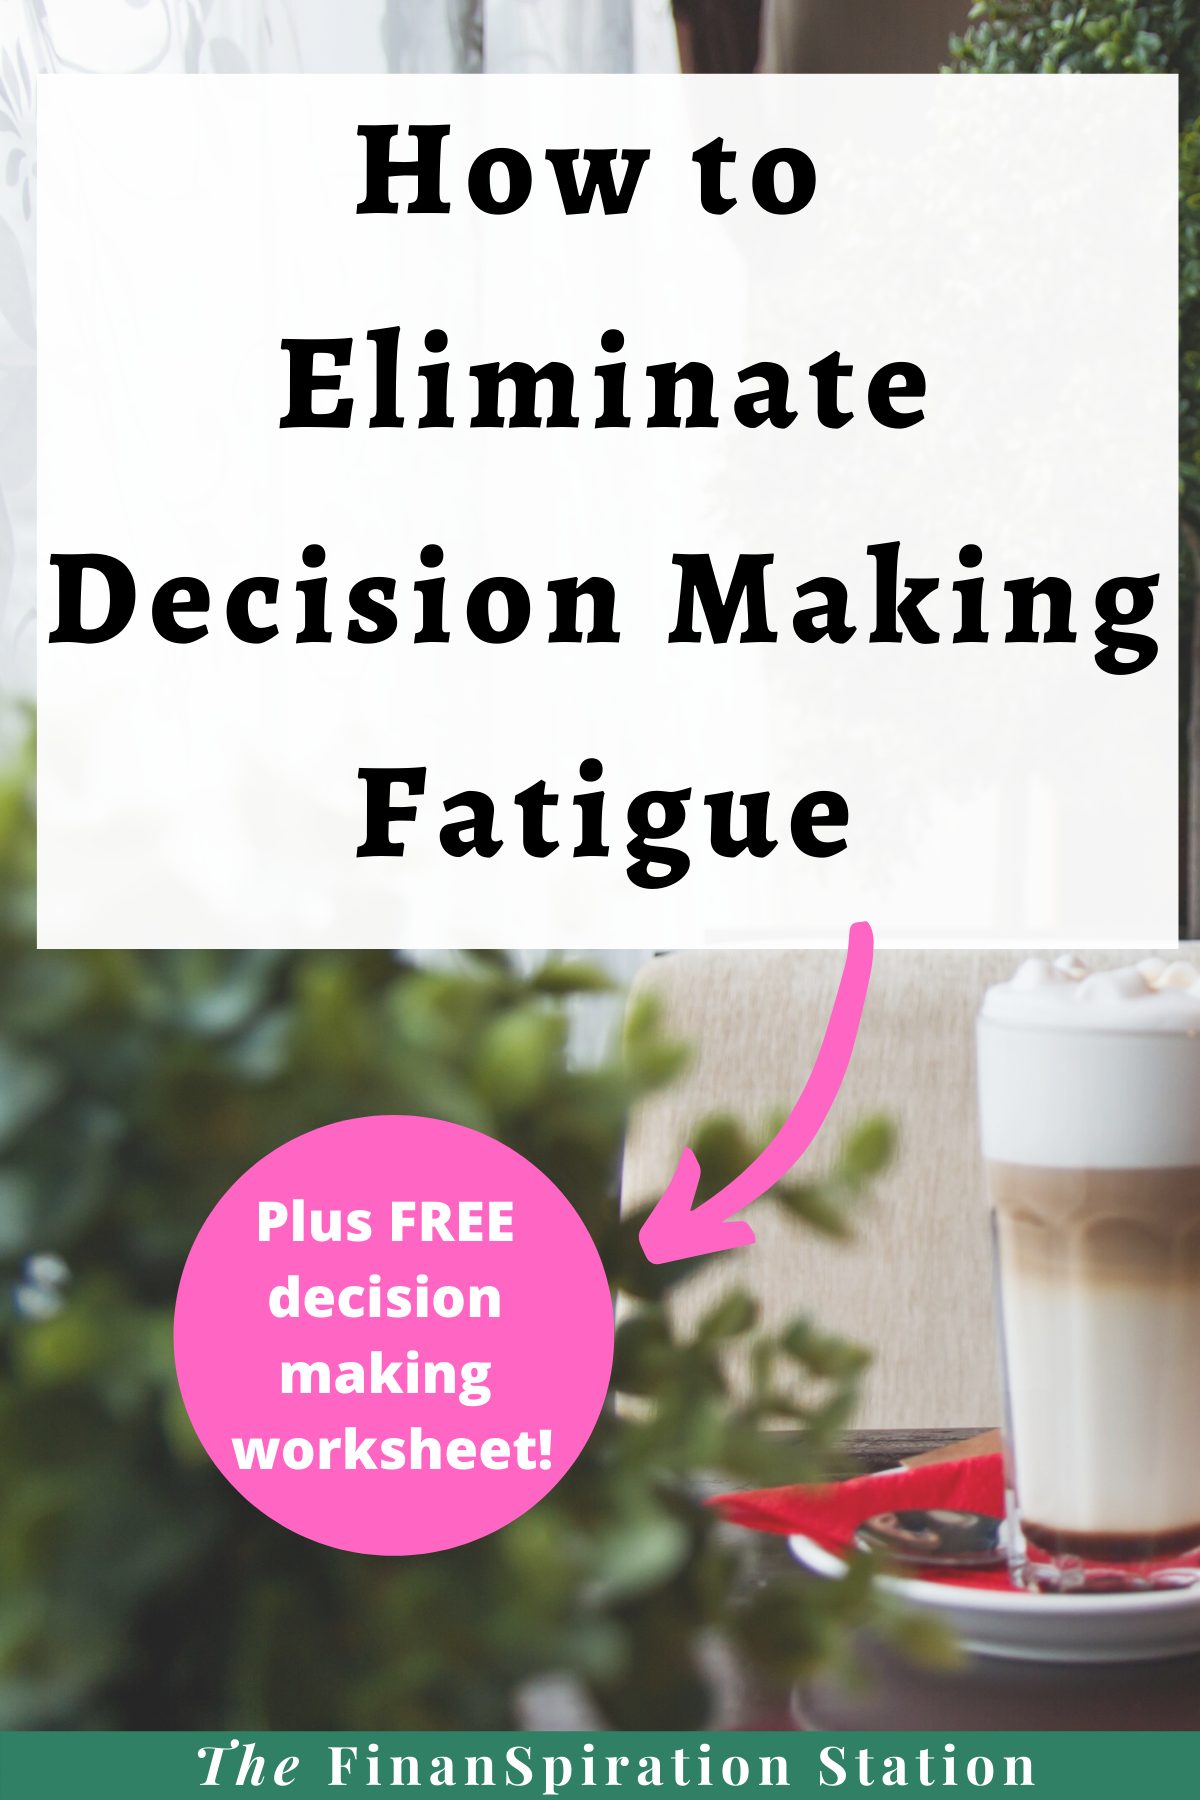 How To Eliminate Decision Making Fatigue